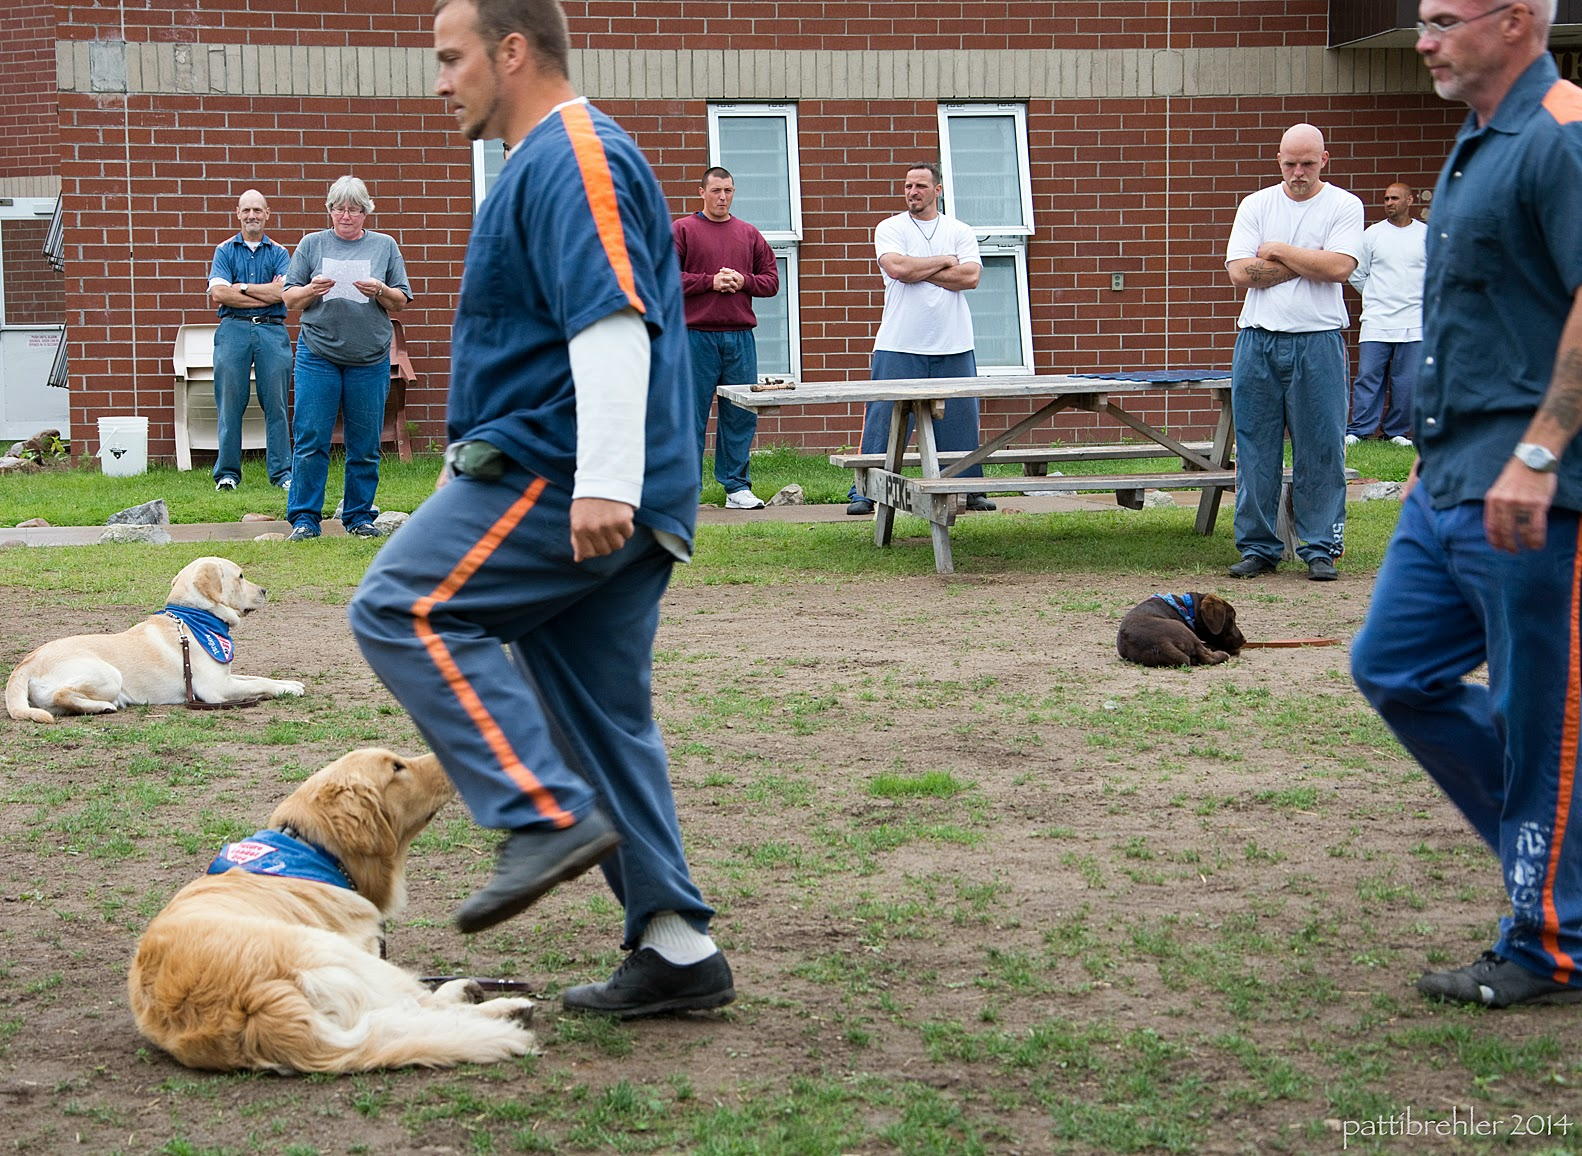 The goldens and chocolate lab are still lying down while two men dressed in the prison blue uniforms step over them. There are several men and the woman standing in the background watching.